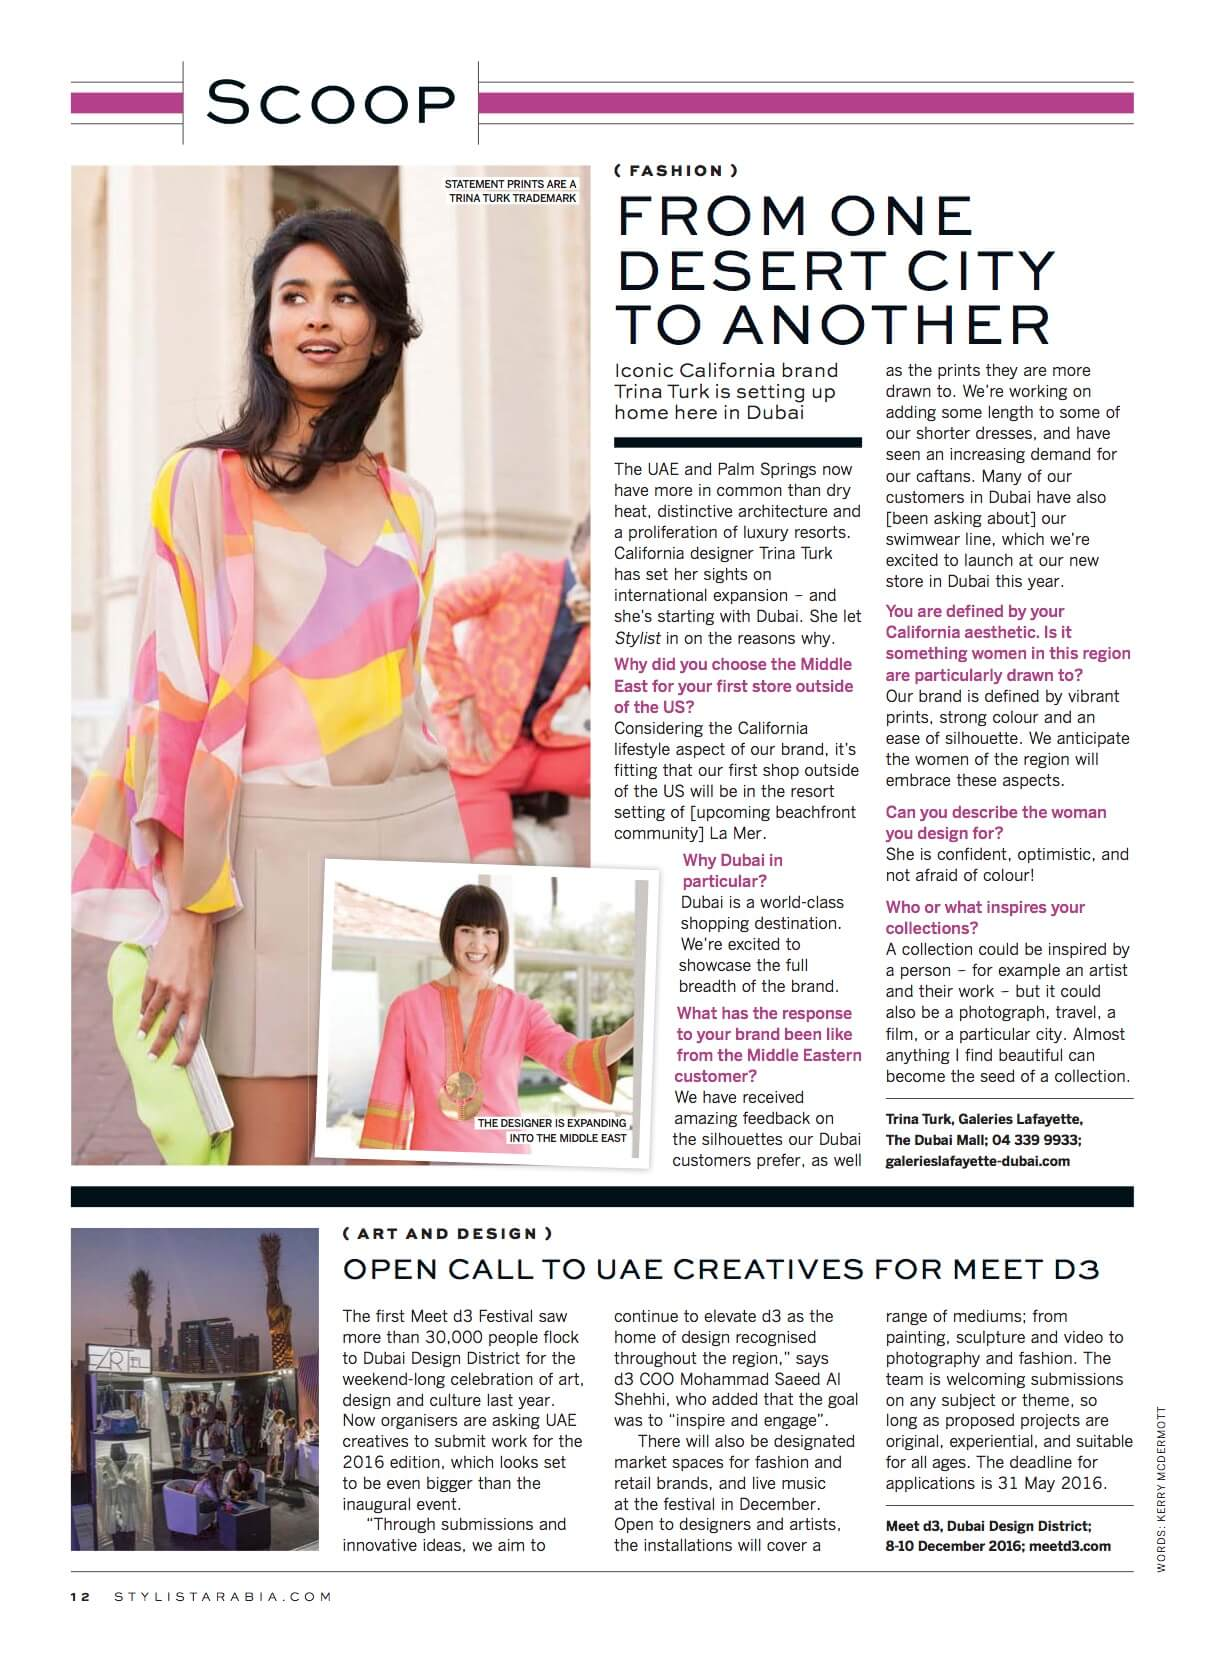 Trina Turk_Stylist Arabia_April 2016_page 12